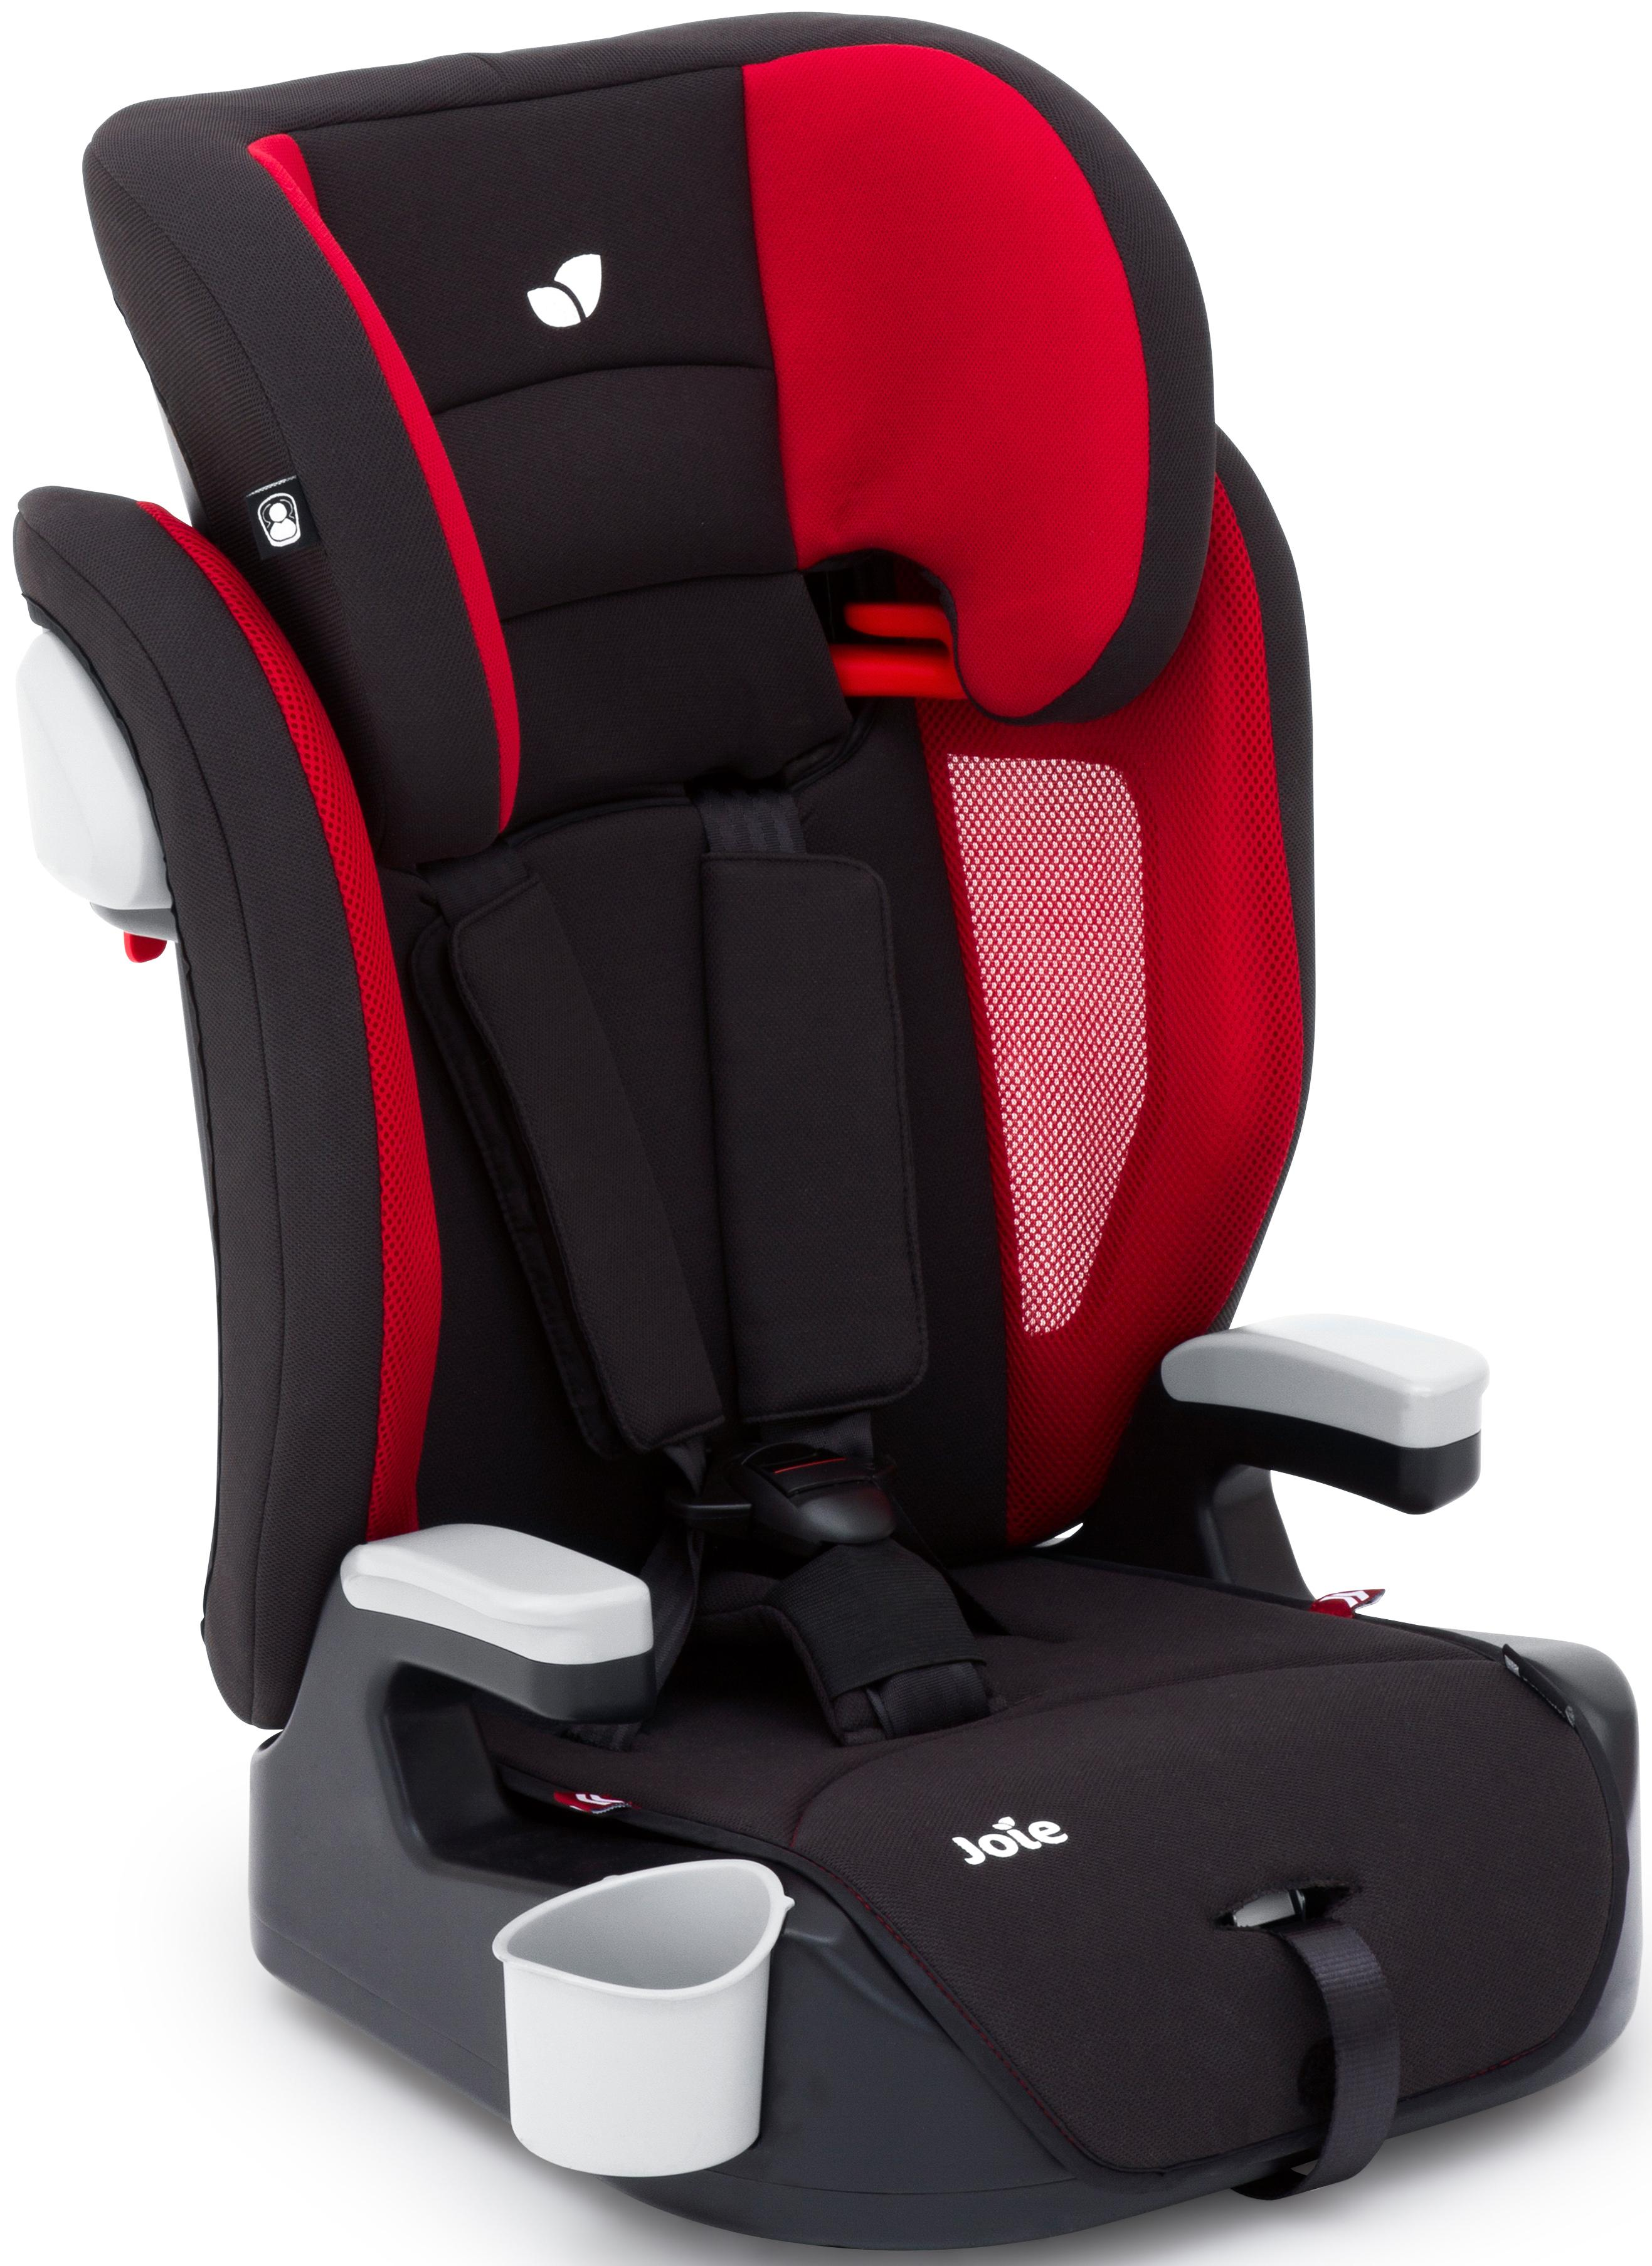 Joie Elevate Car Seat – Cherry Red